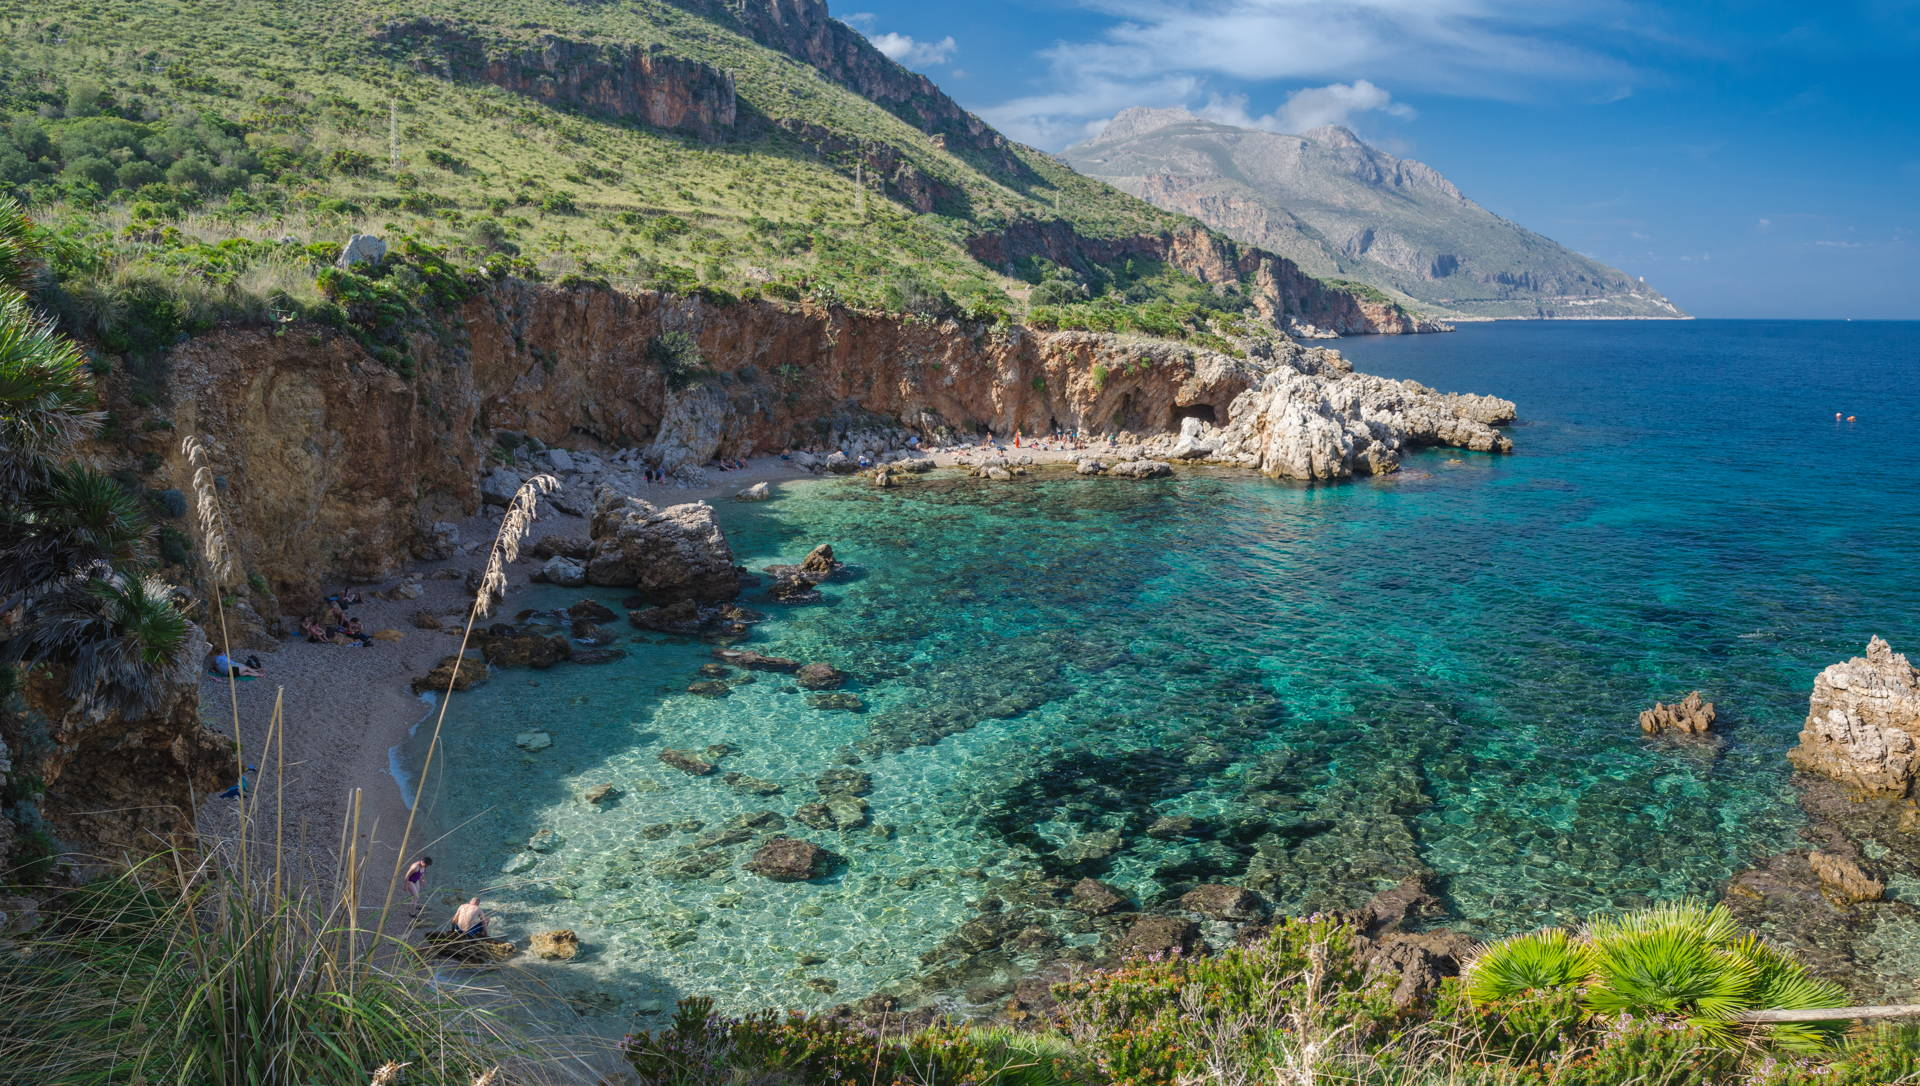 Disa, Disa beach, cala disa, cala zingaro, best beaches of zingaro, zingaro, zingaro natural reserve, best places to visit in sicily, sicily, italy, travel sicily, where to go in sicily, best beaches of sicily